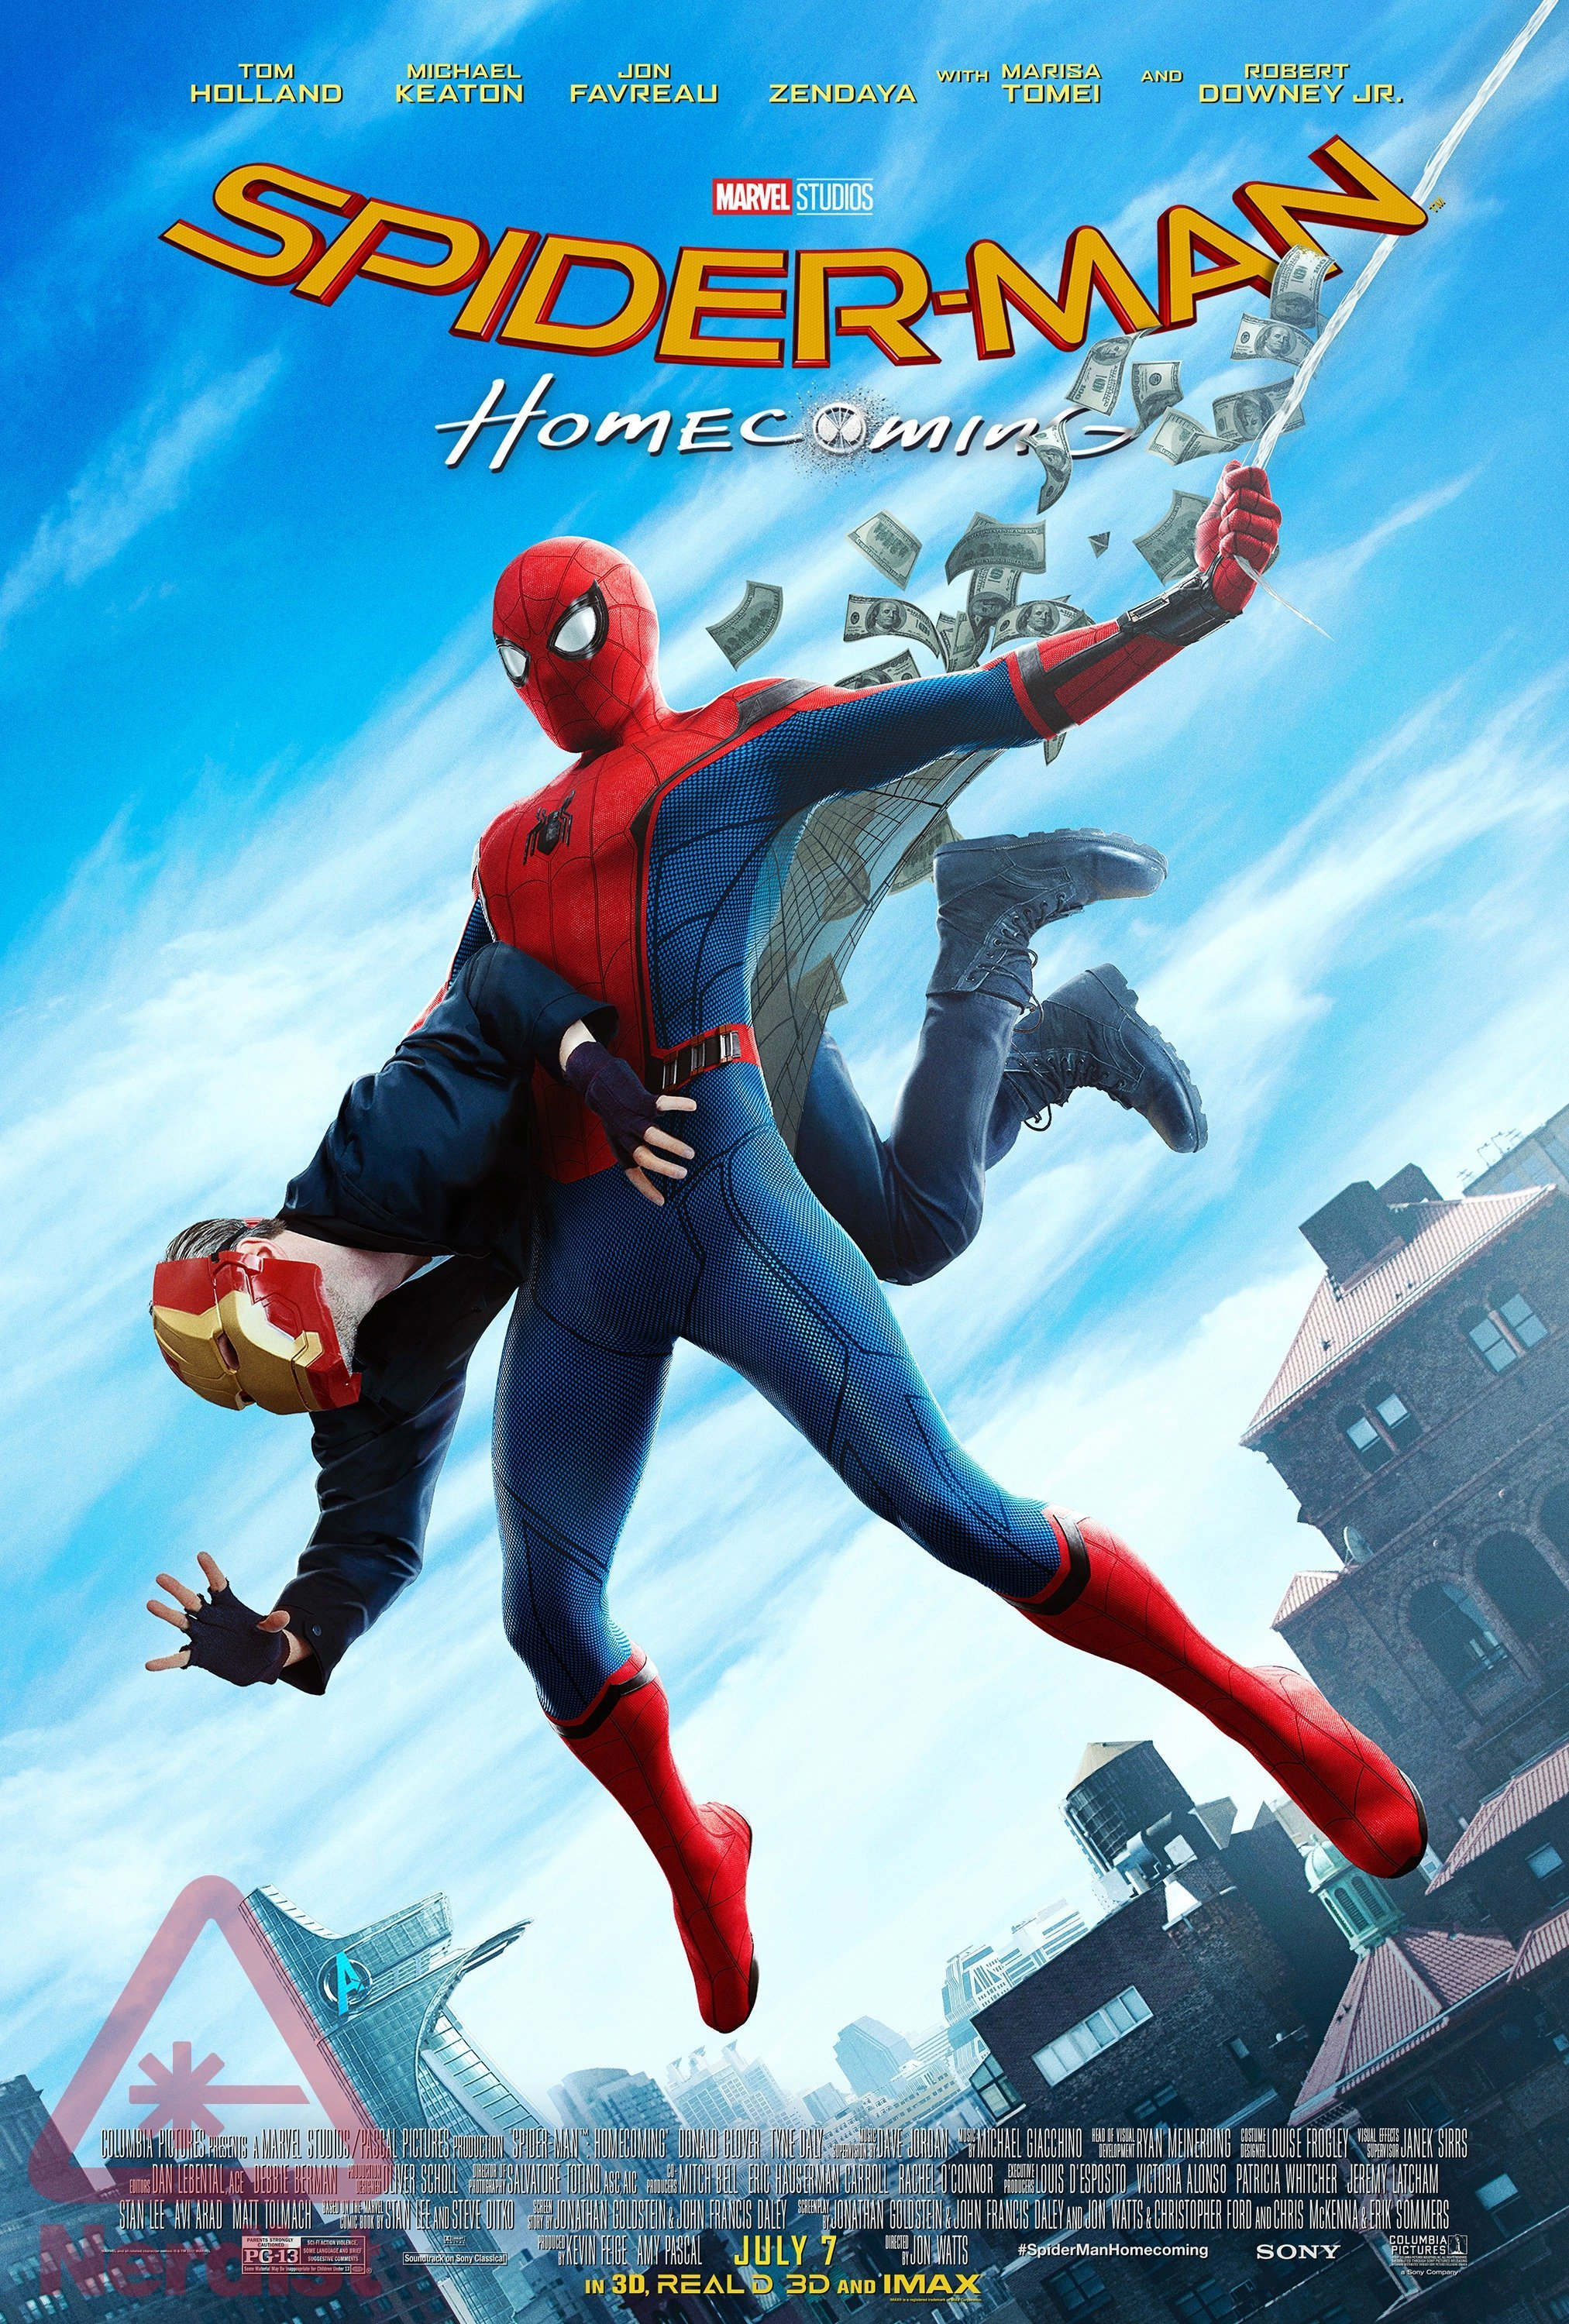 Poster du film Spider-Man: Homecoming rendant hommage à Amazing Fantasy #15